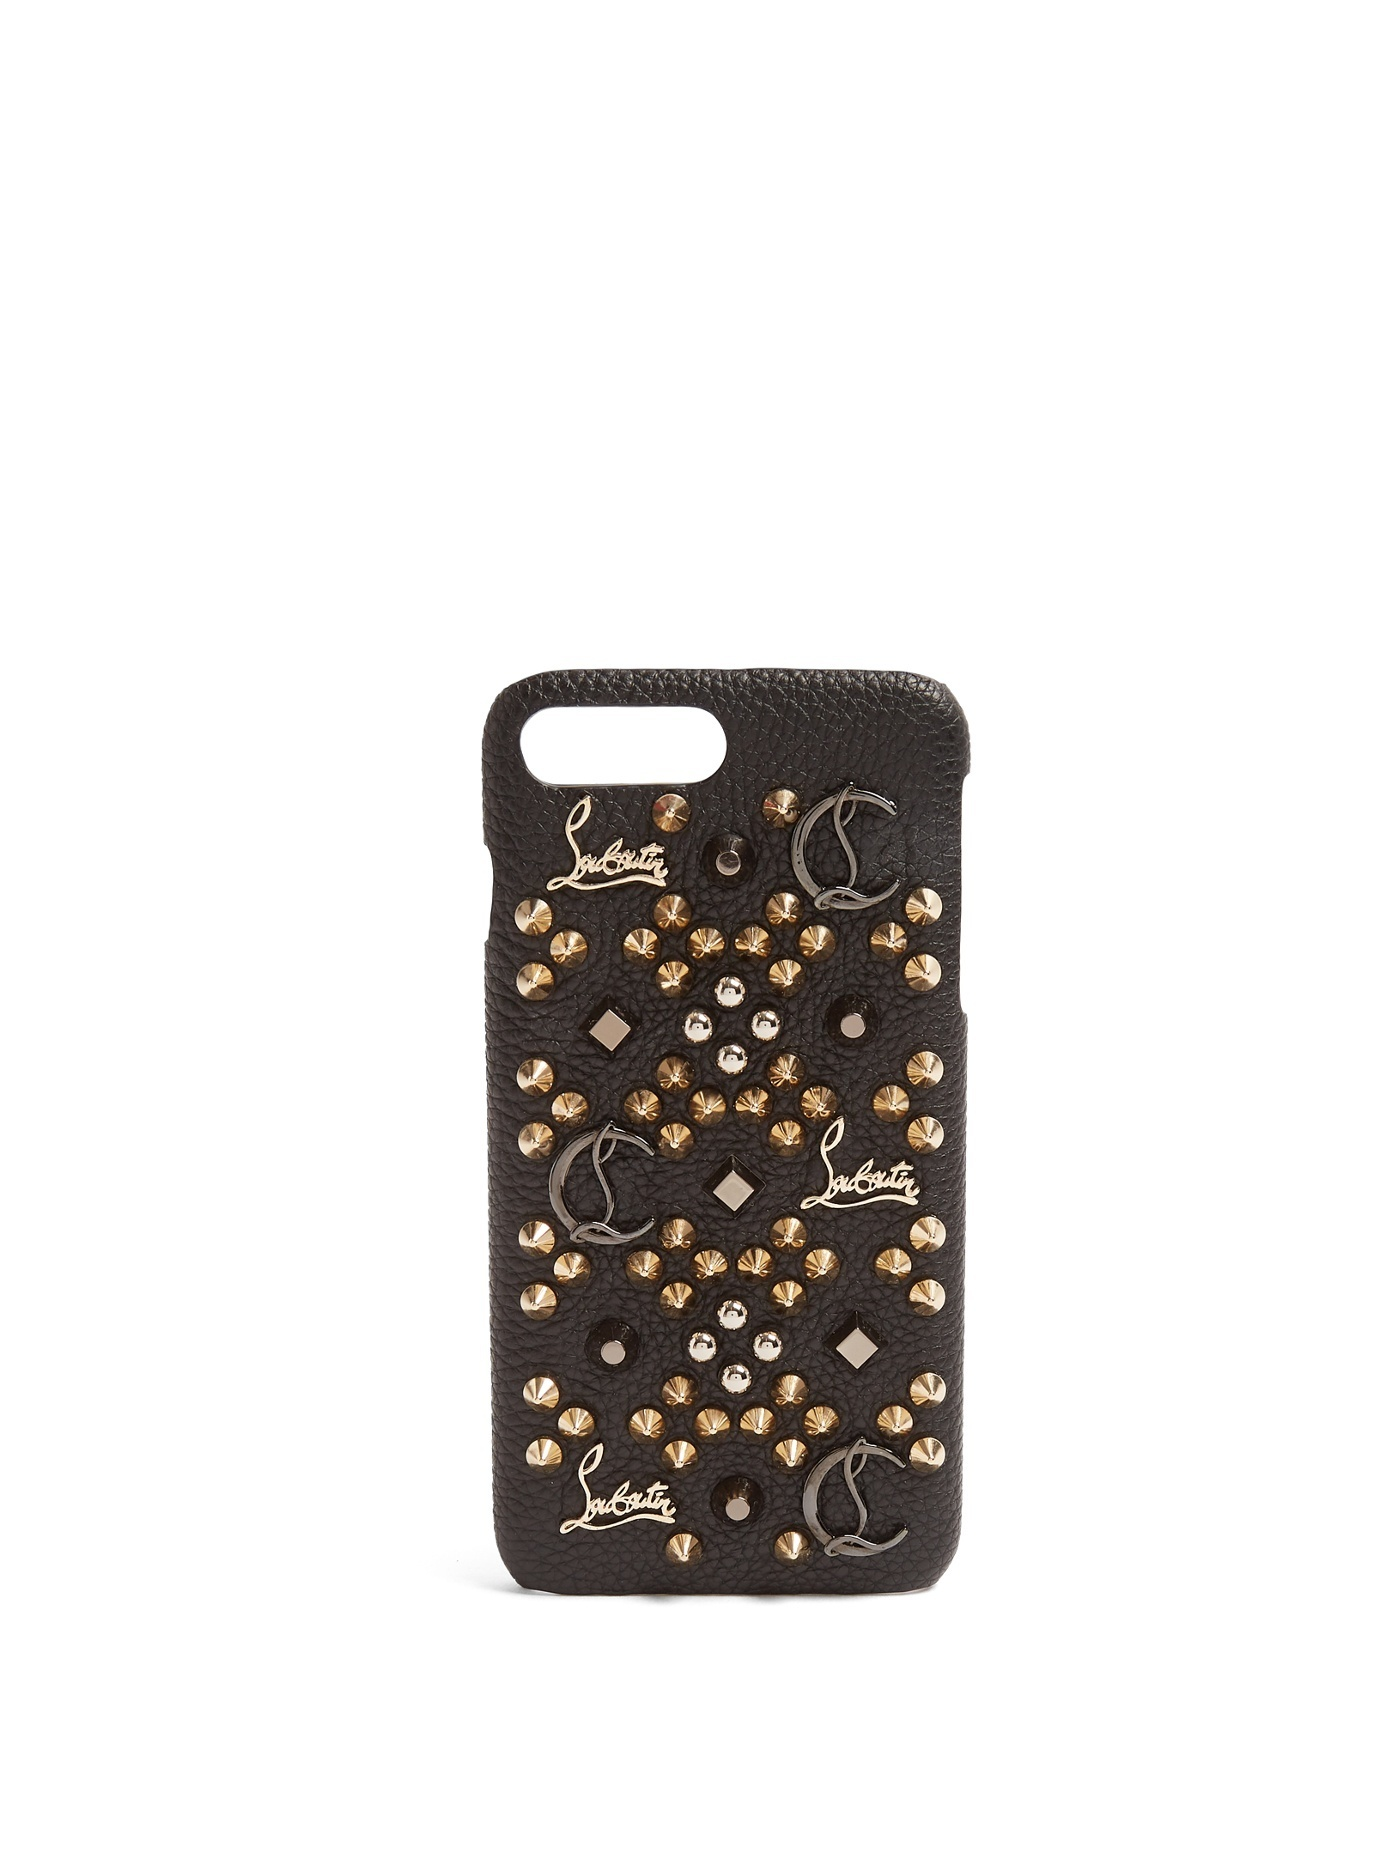 国内発・関税込★CHRISTIAN LOUBOUTIN ★iPhone7 Plus case